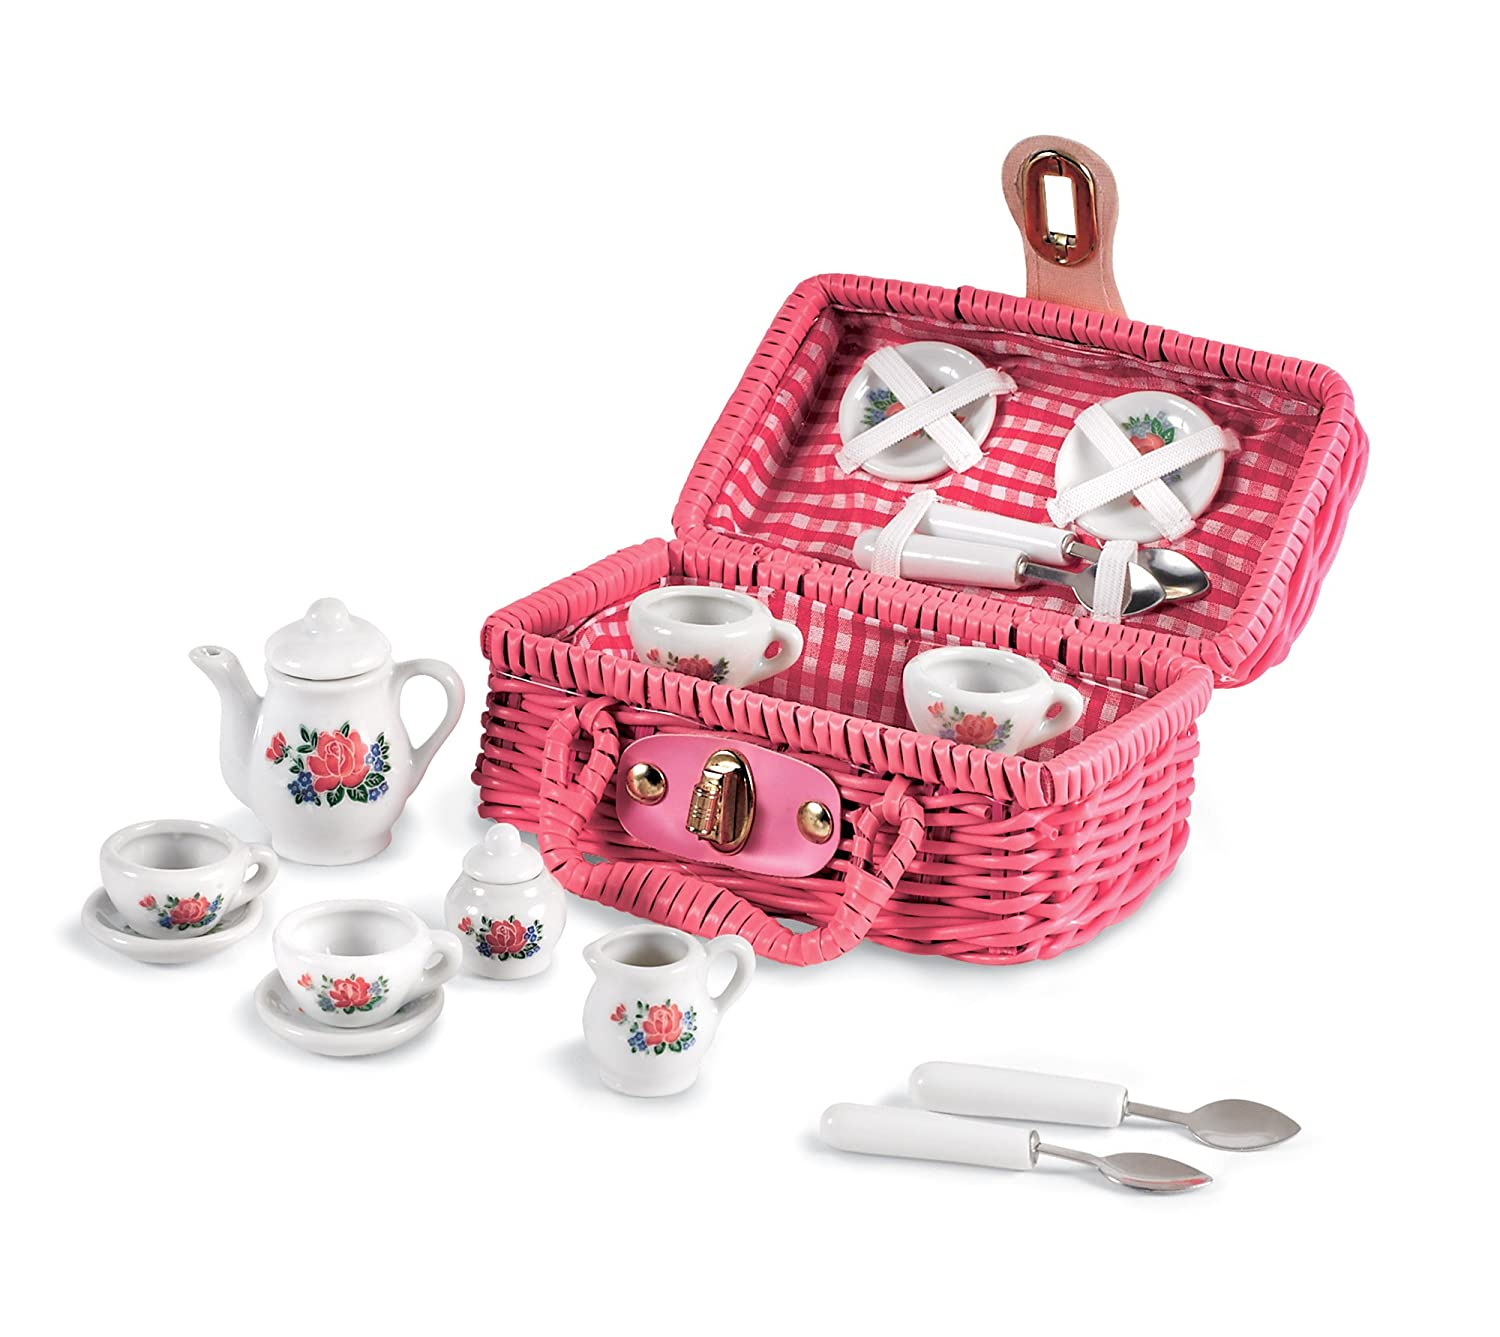 Mini Toy Tea Set - 17 Pieces in a Pink Wicker Basket - Perfect for Dress Up and Imagination Play